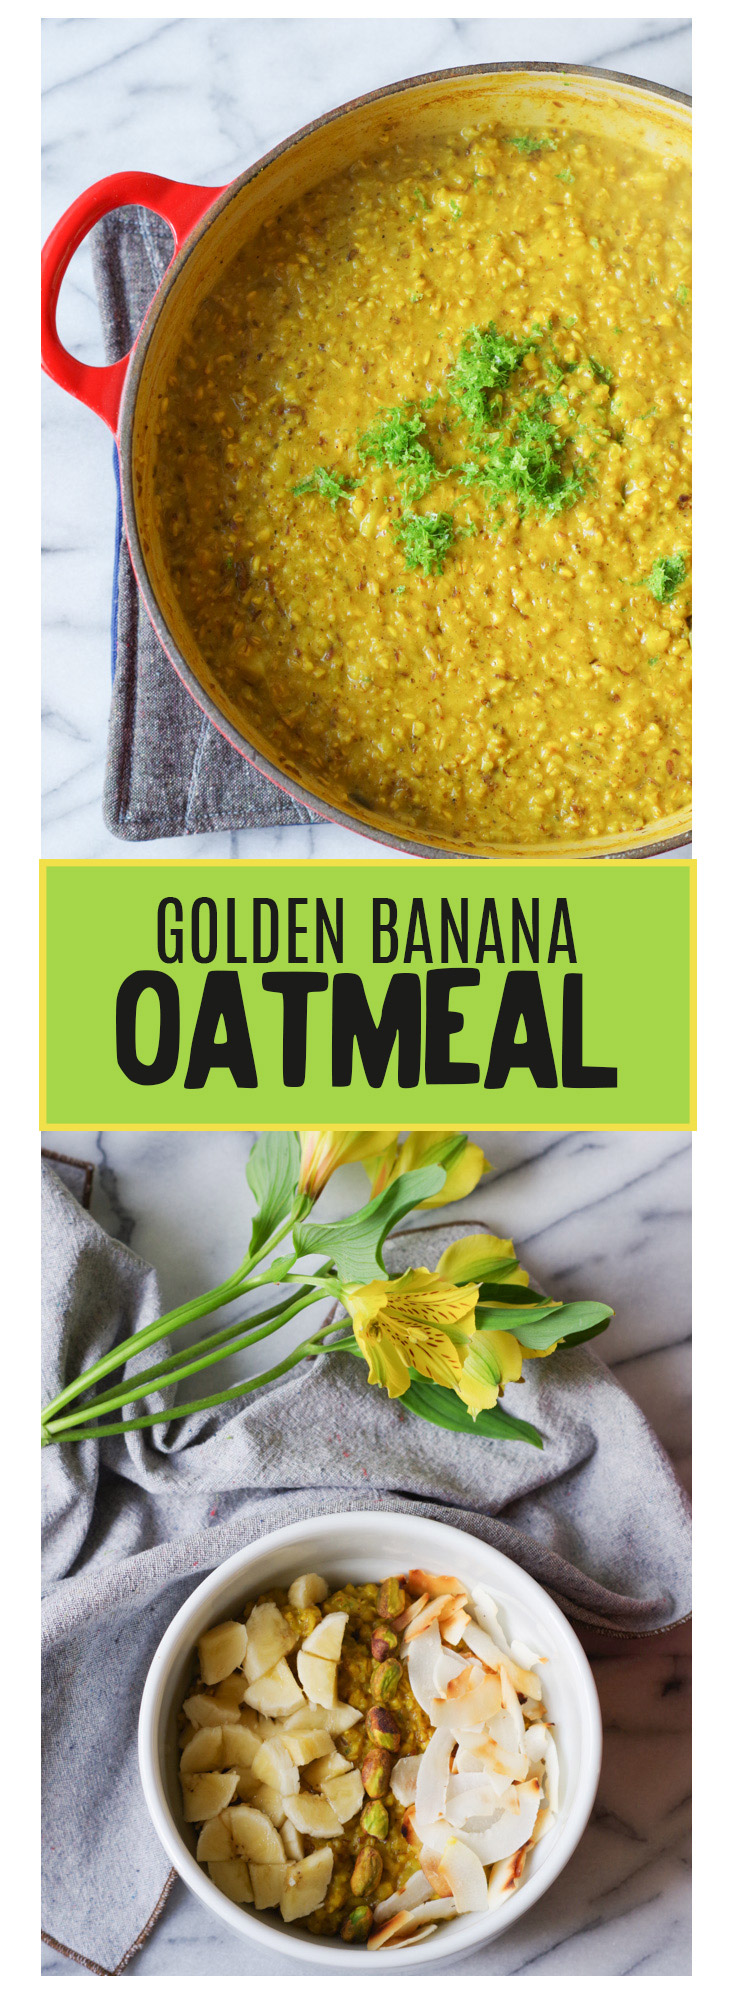 Golden Banana Oatmeal topped with bananas, pistachios, and toasted coconut chips. Vegan & Gluten-free. By beautiful Ingredient